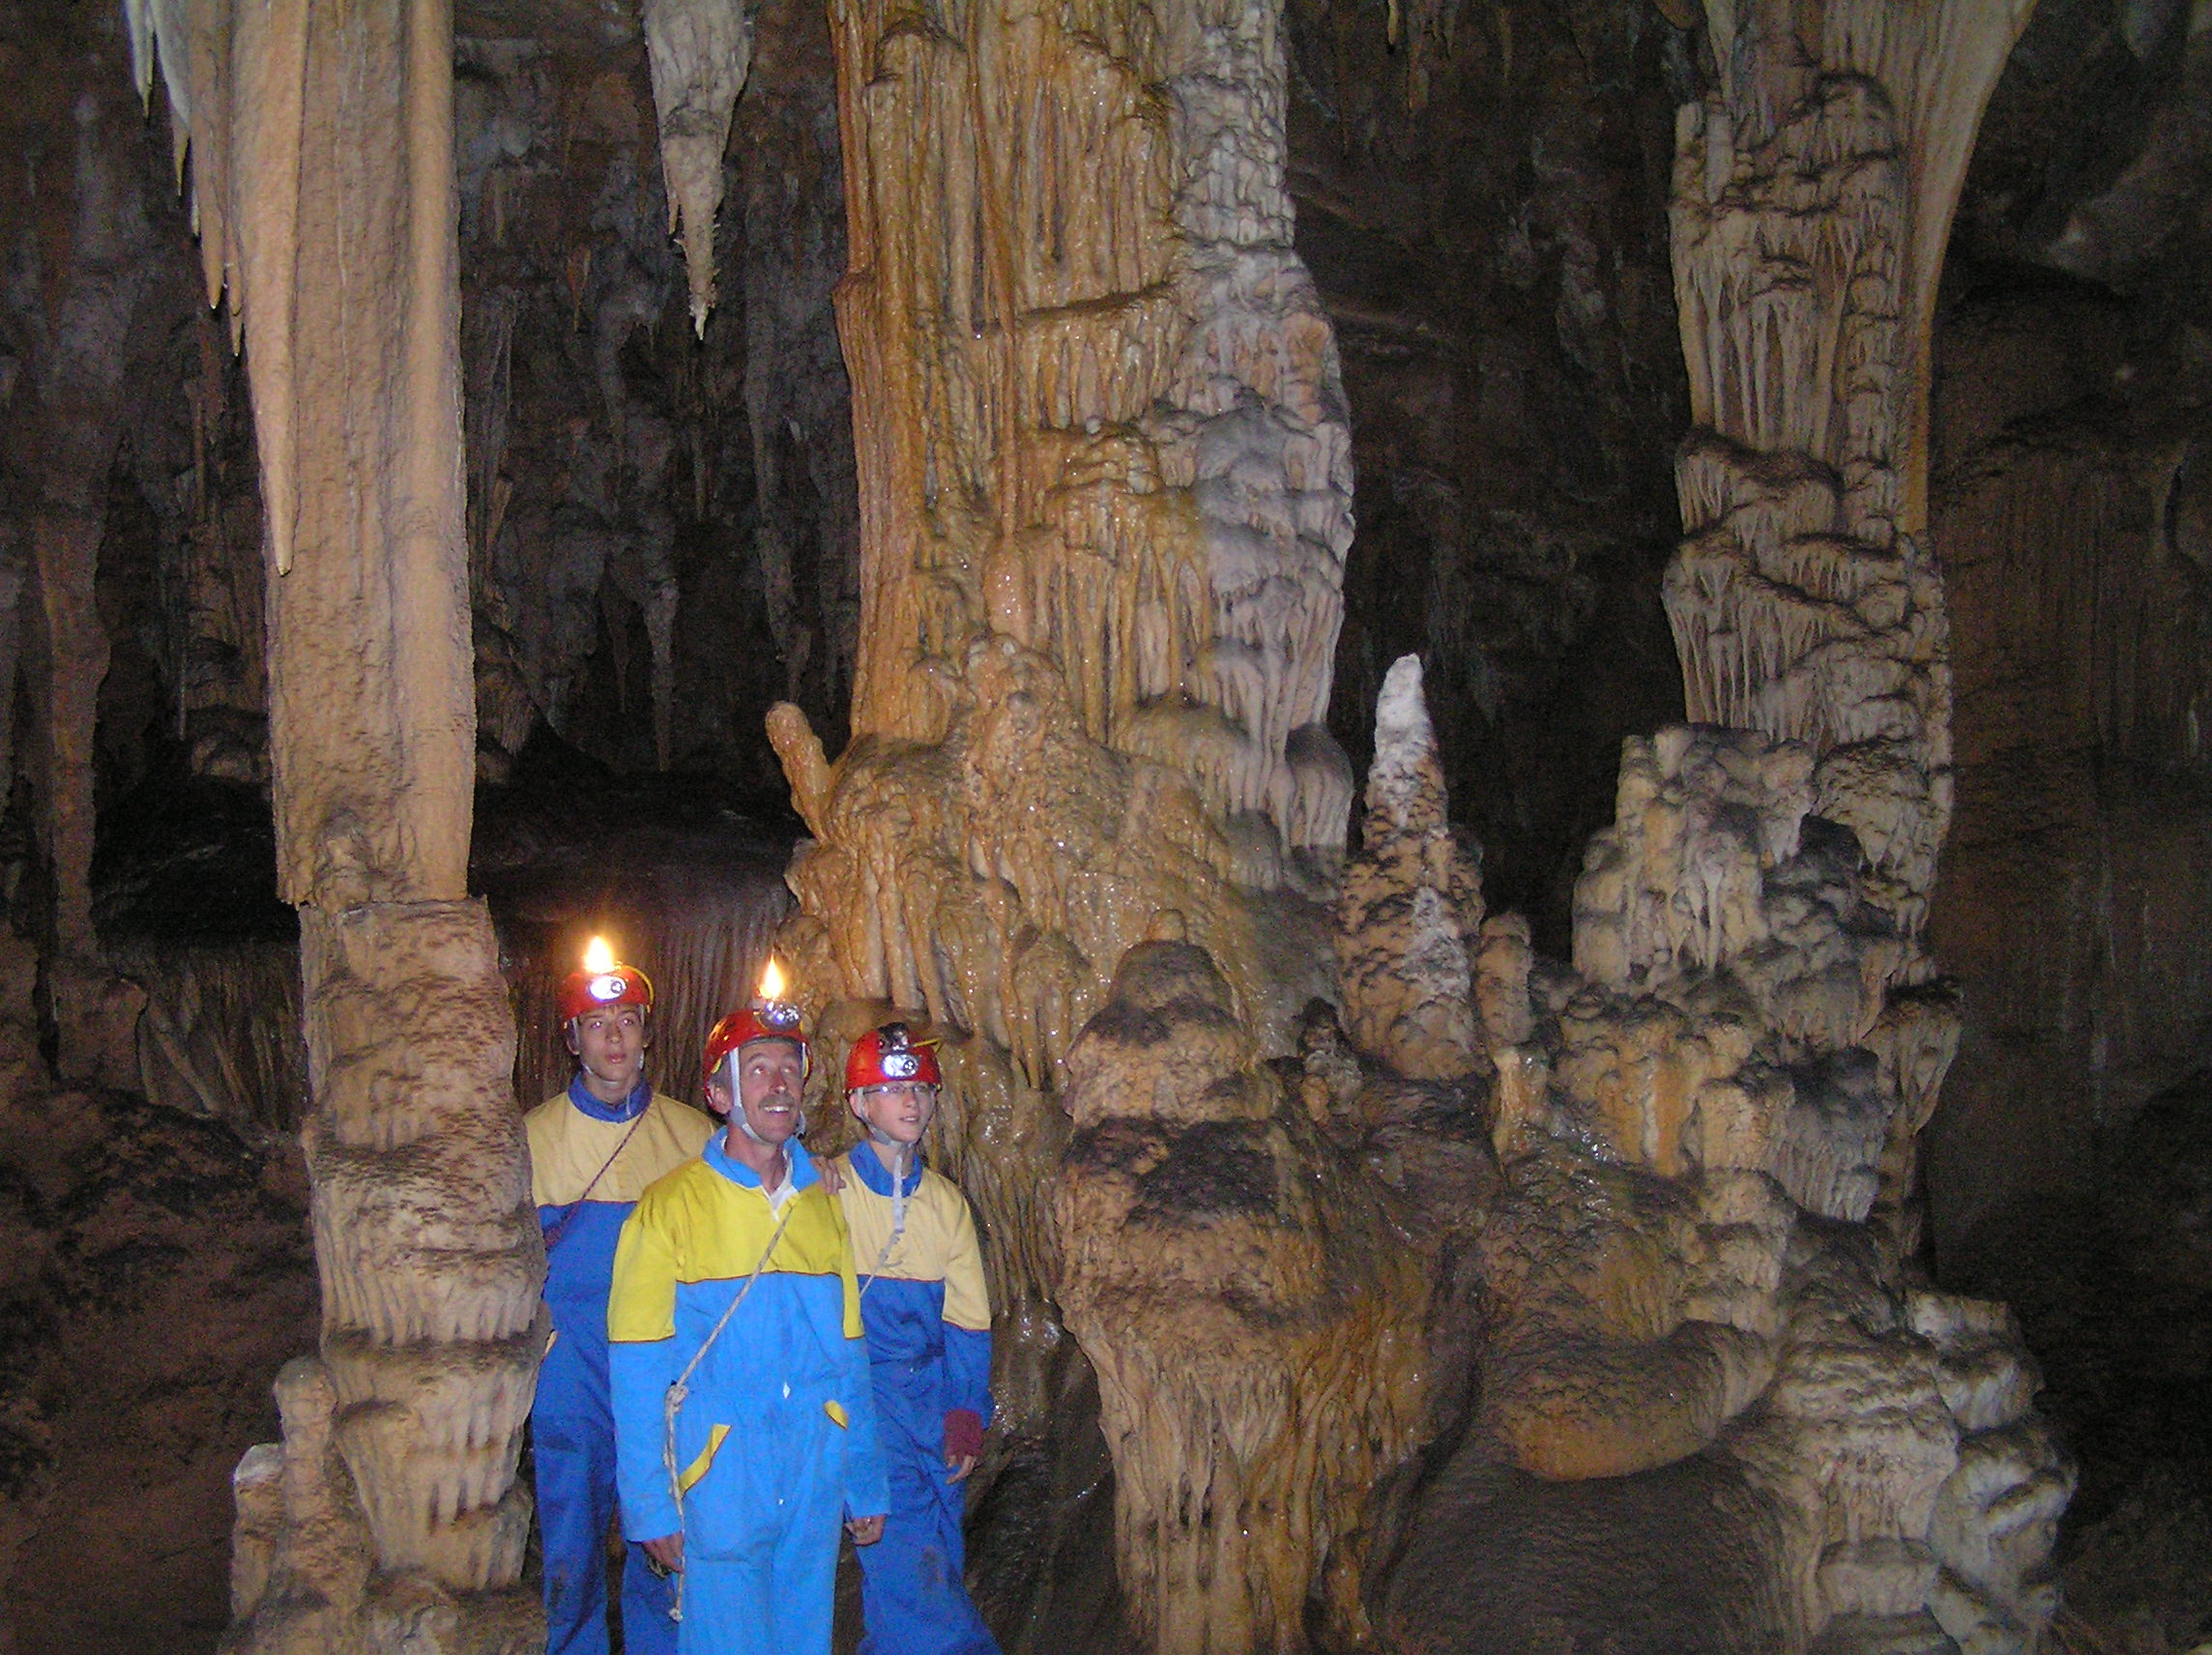 PEOPLE ON A CAVING TOUR